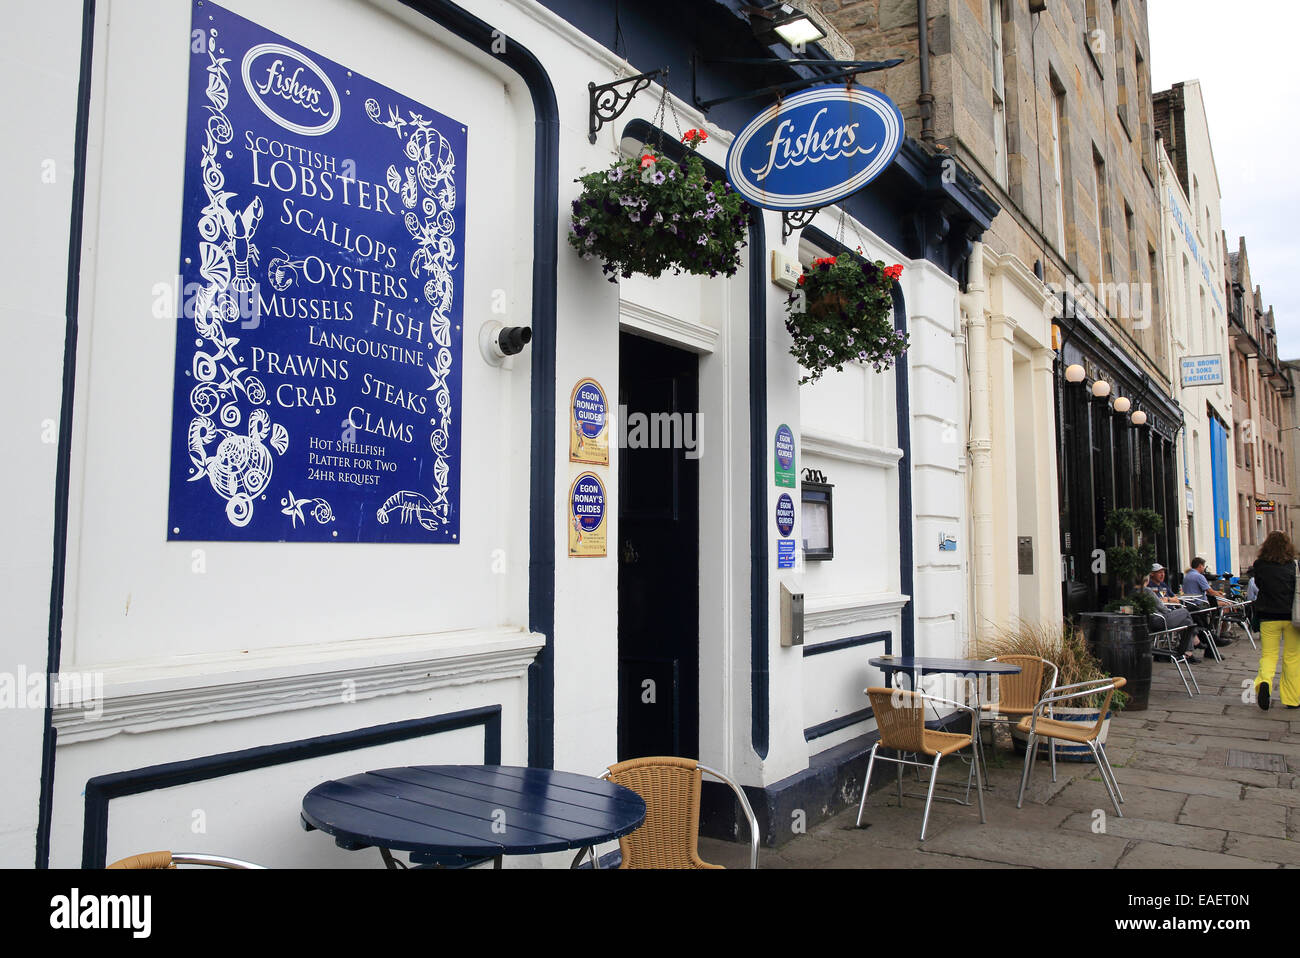 Fishers In Leith A Restaurant Serving Fish And Local